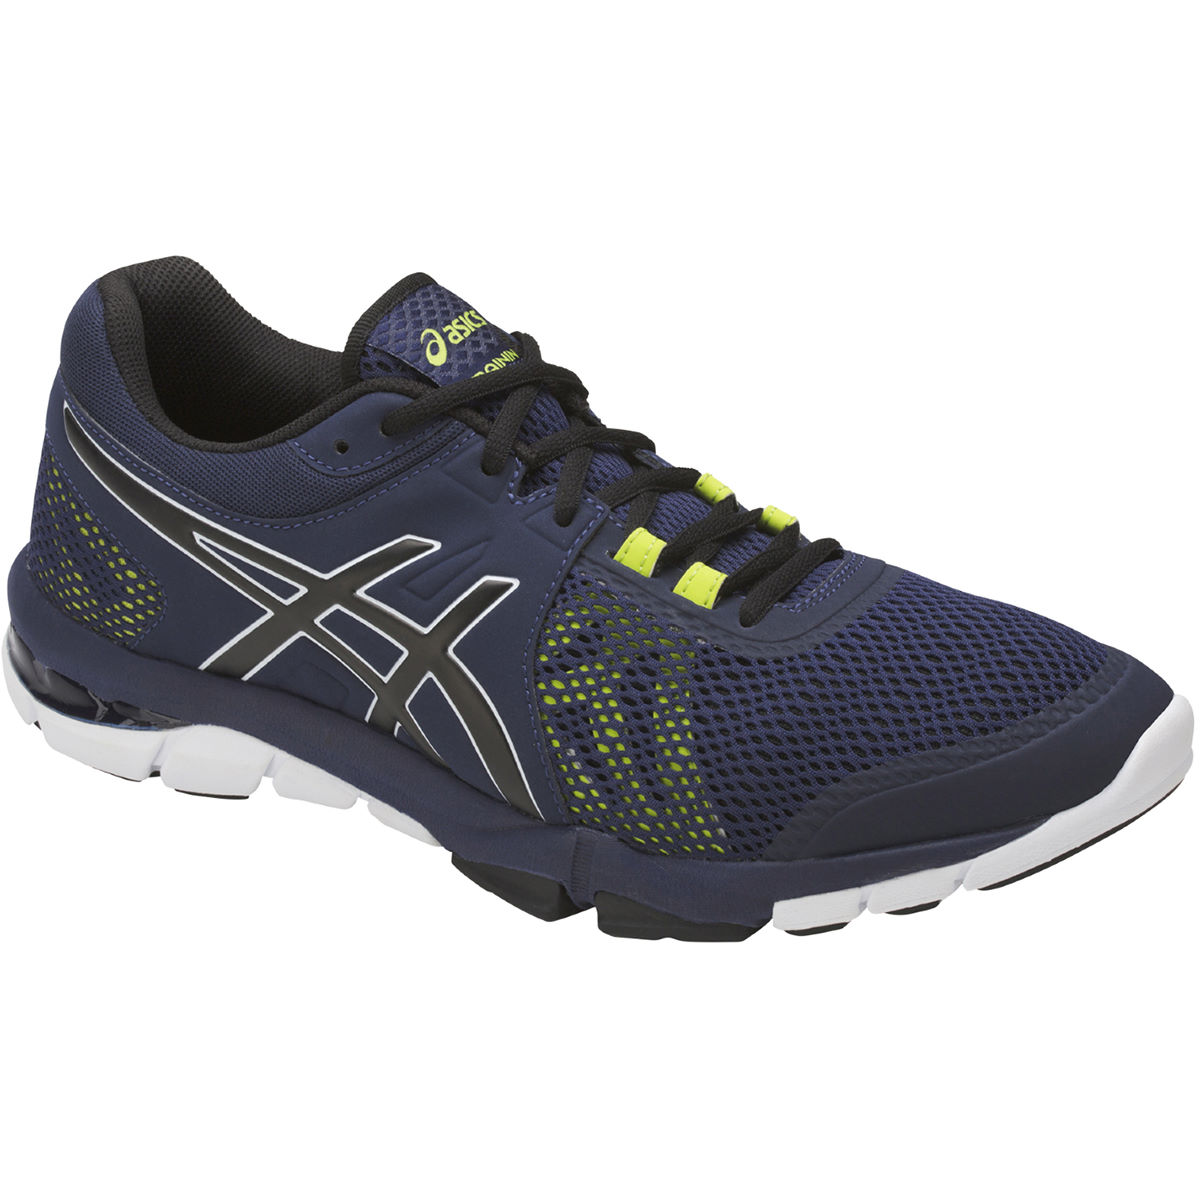 Best Online Store For Running Shoes Uk